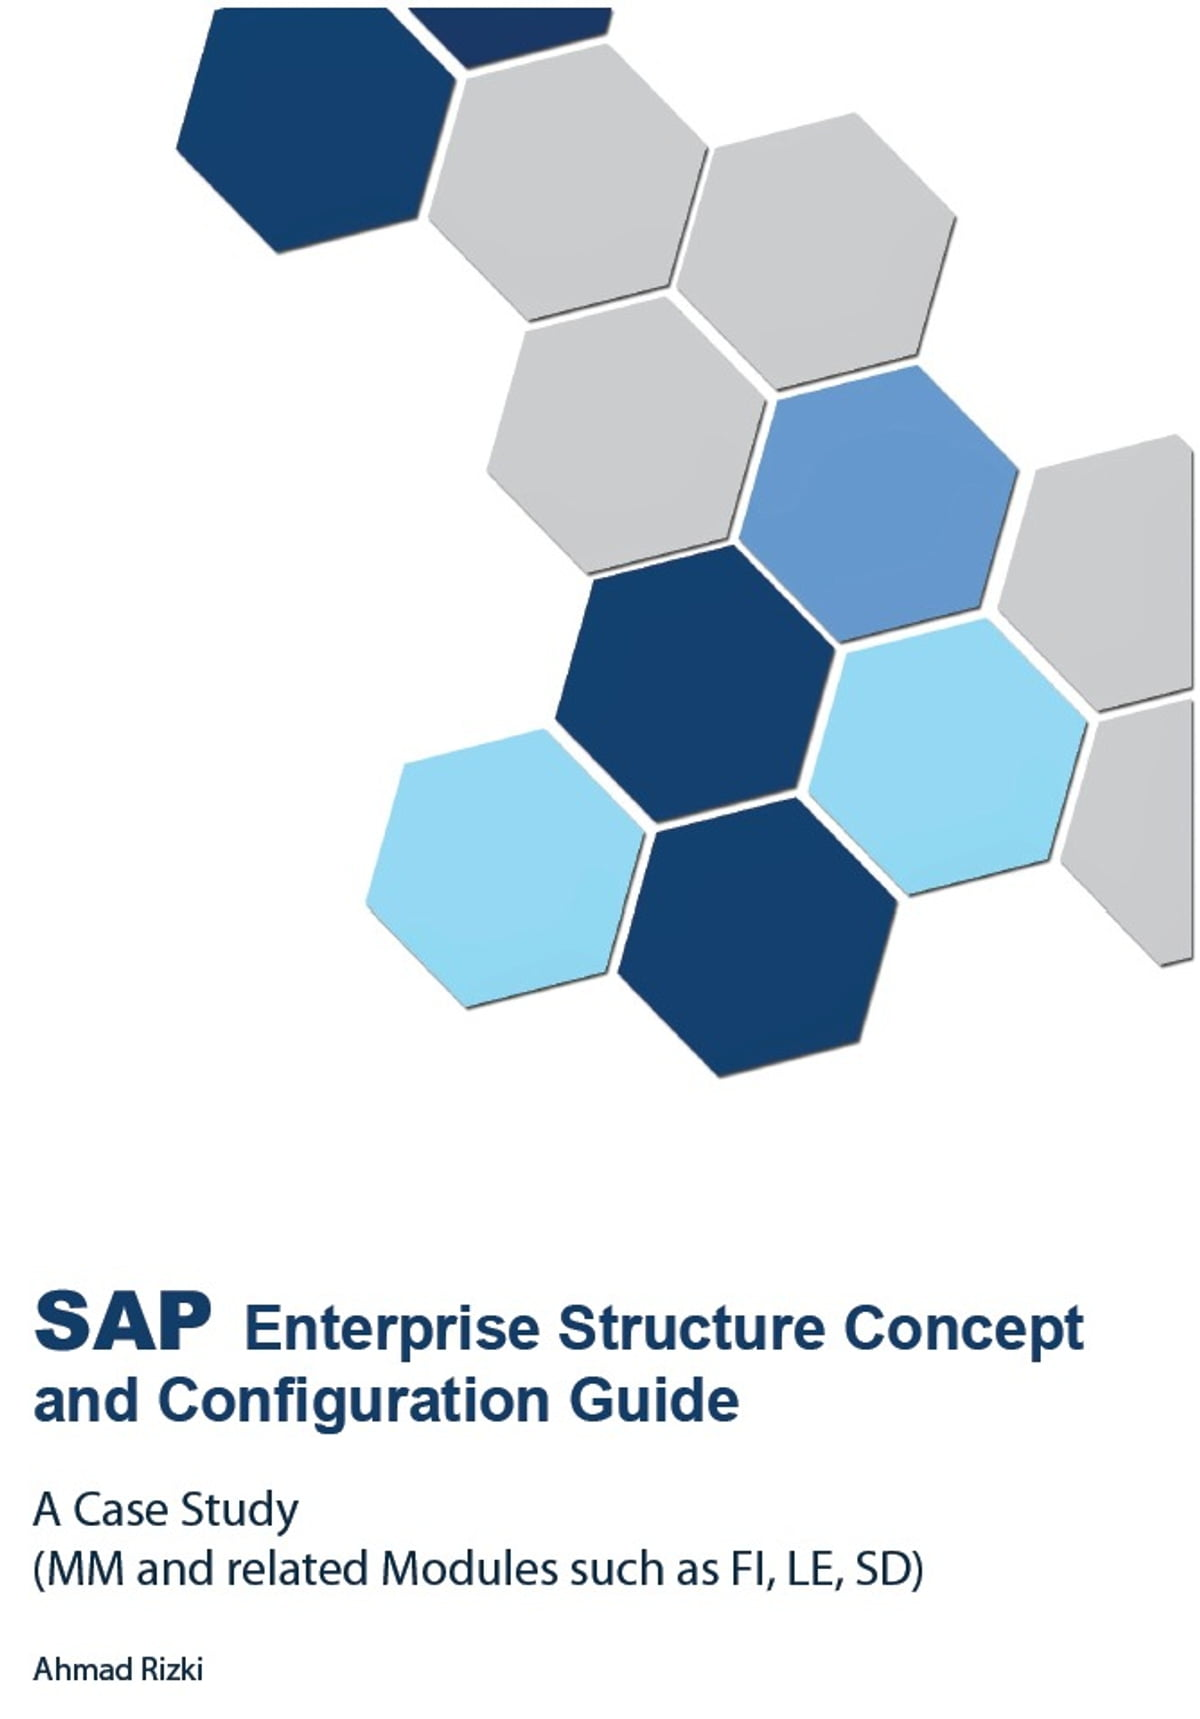 SAP Enterprise Structure Concept and Configuration Guide: A Case Study  ebook by Ahmad Rizki - Rakuten Kobo